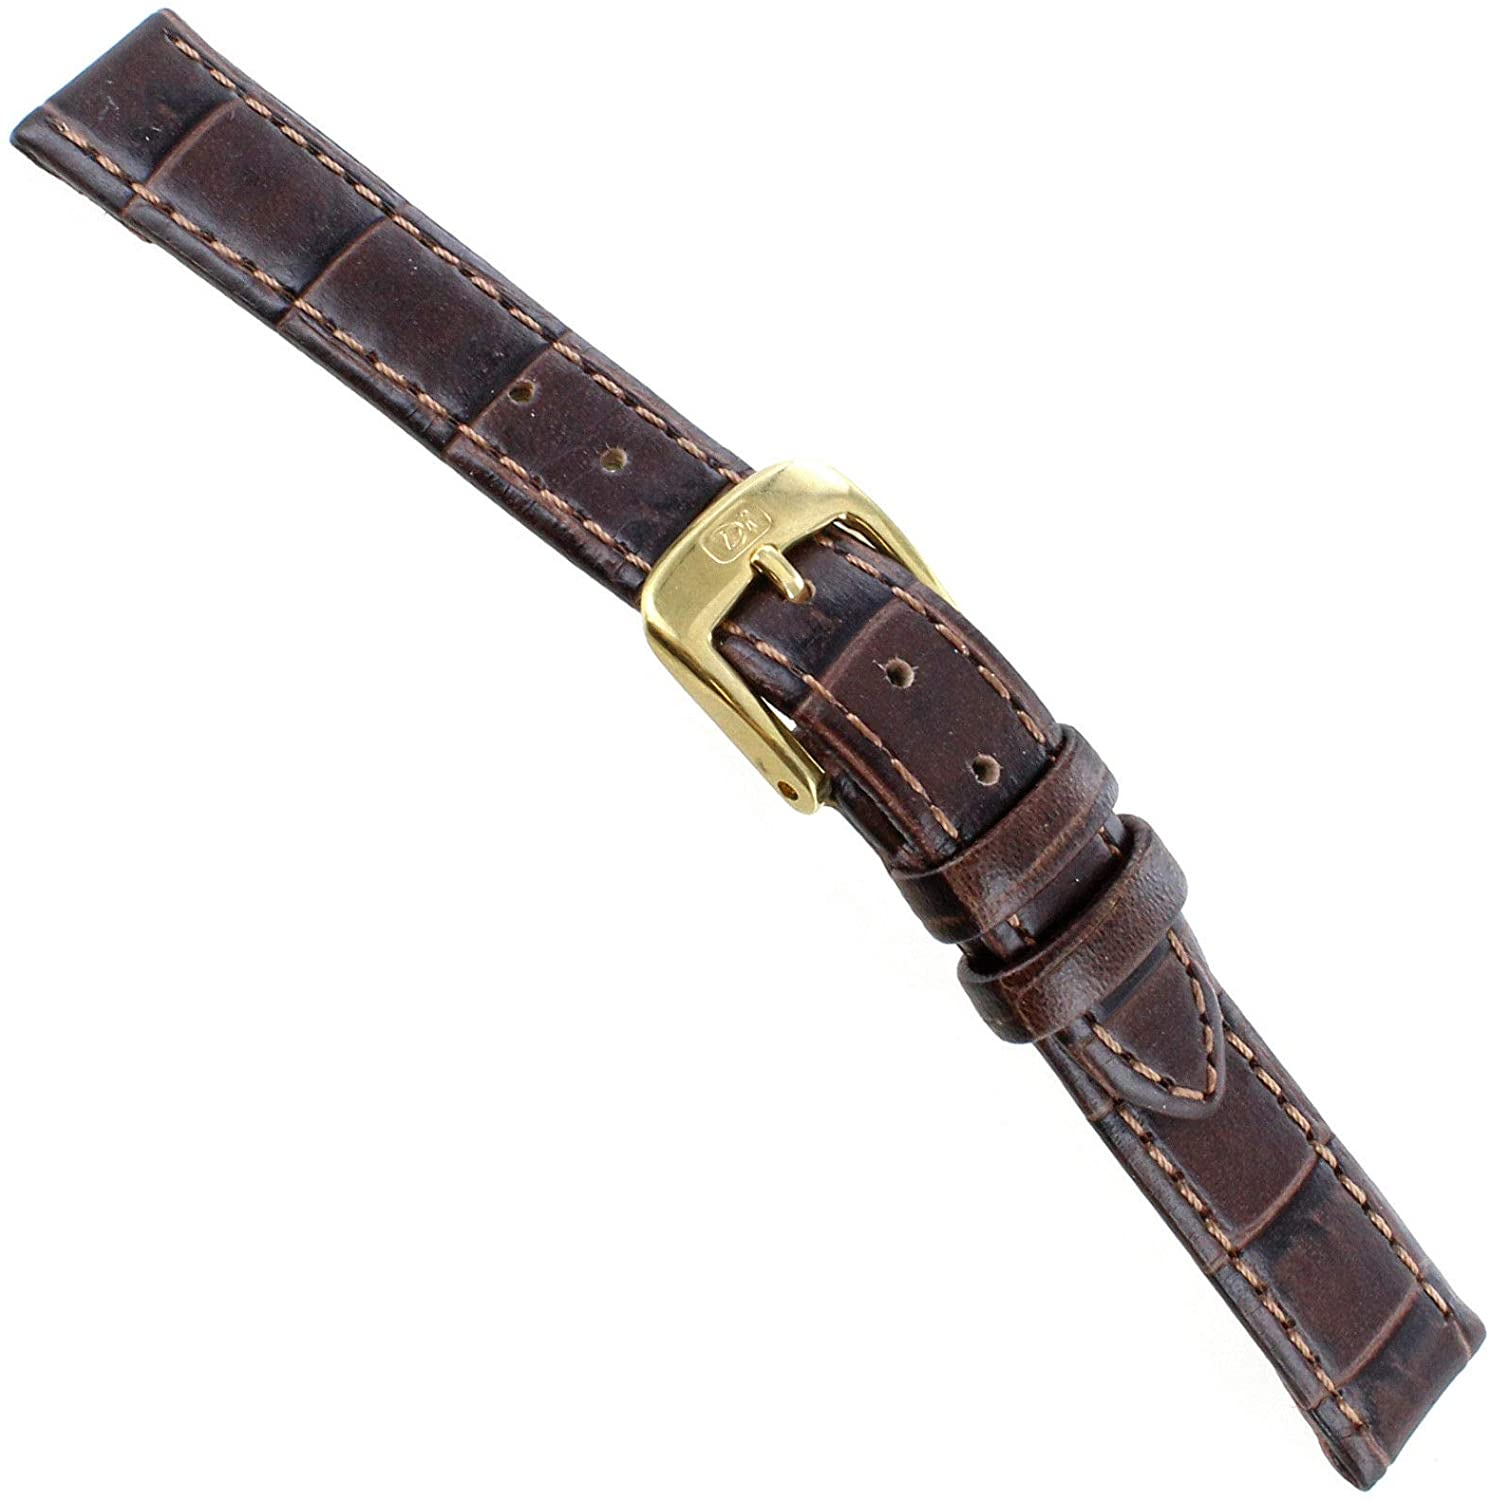 12mm Di Modell Brown Bali Louisiana Alligator Pattern On Calfskin Watch Band XS